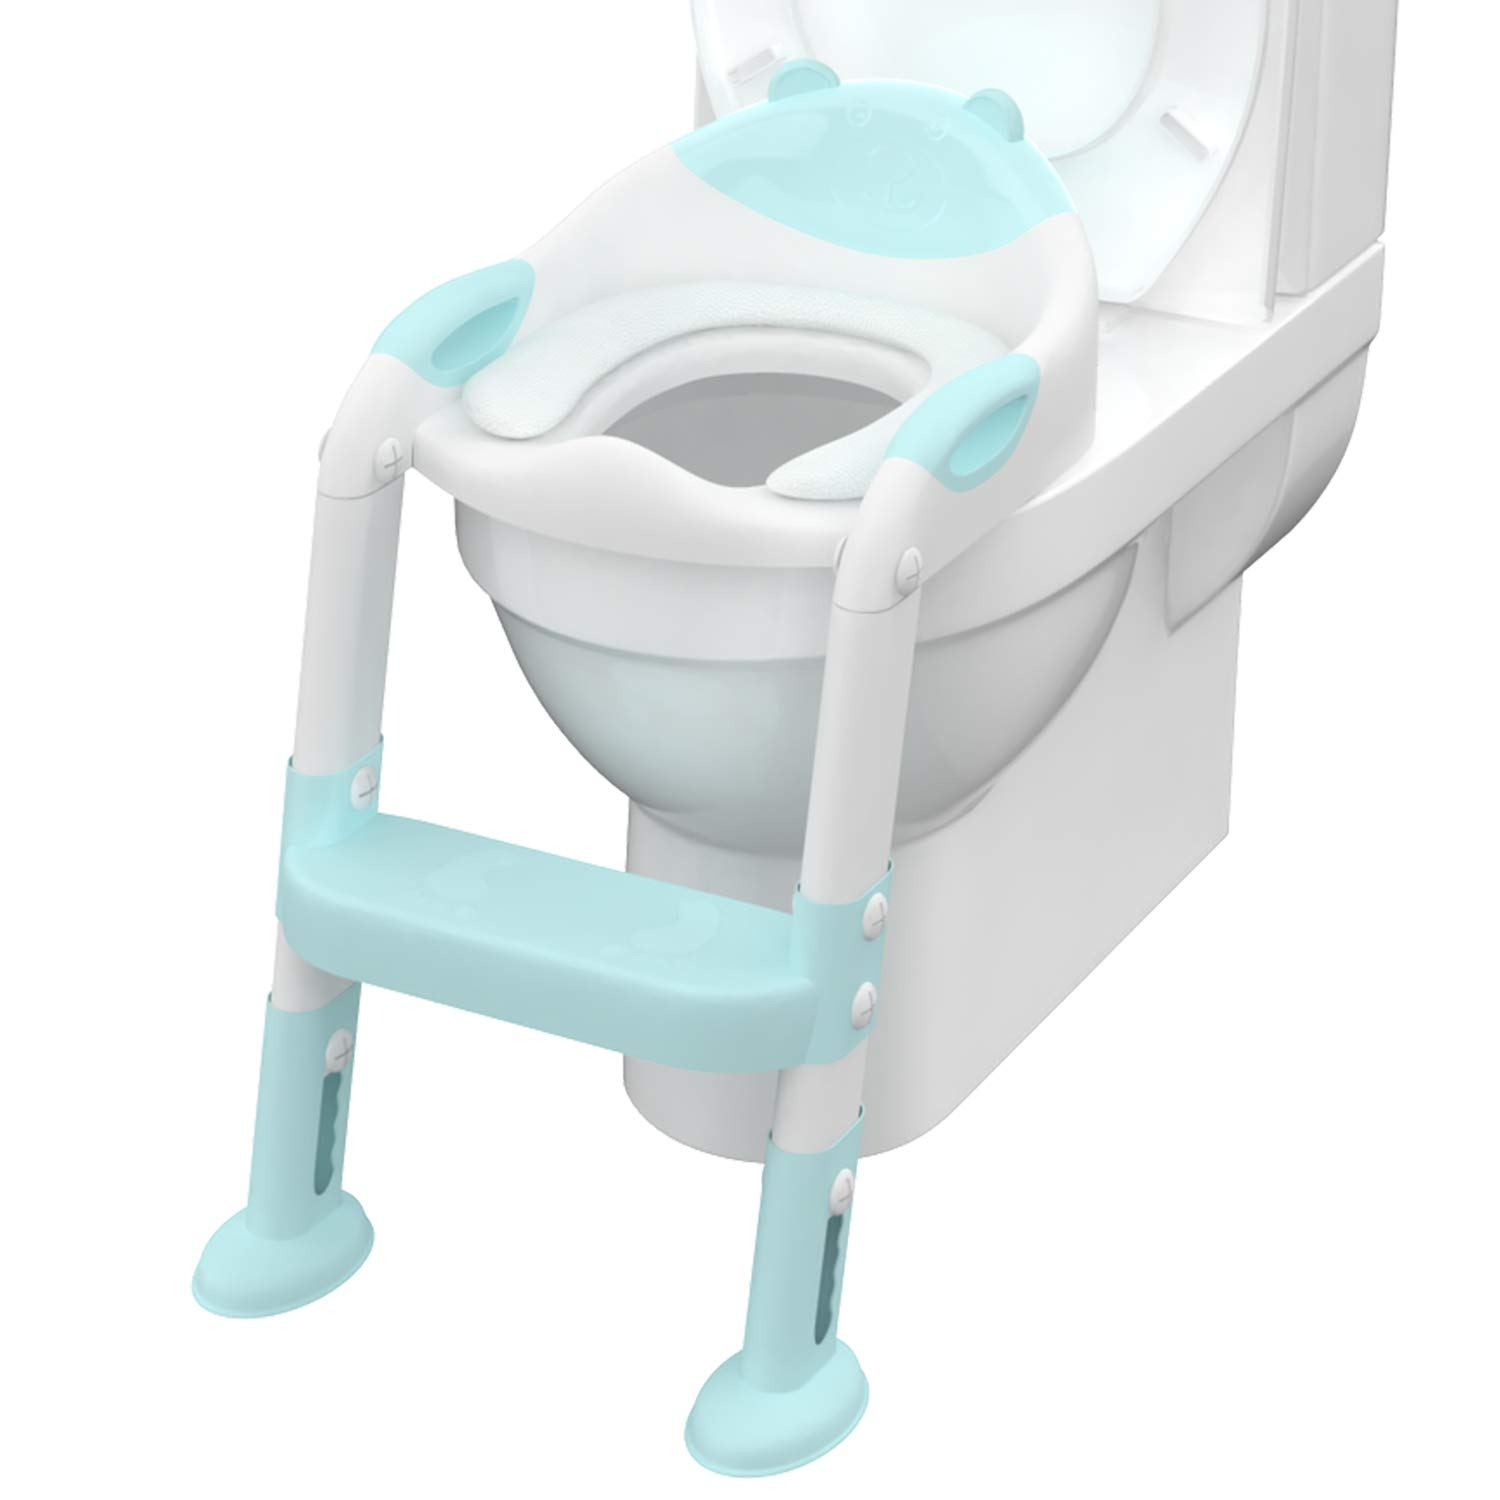 Ganowo Toilet Potty Training Seat Adjustable Potty Chair with Sturdy Non-Slip Step Stool Ladder for Baby Toddlers Kids